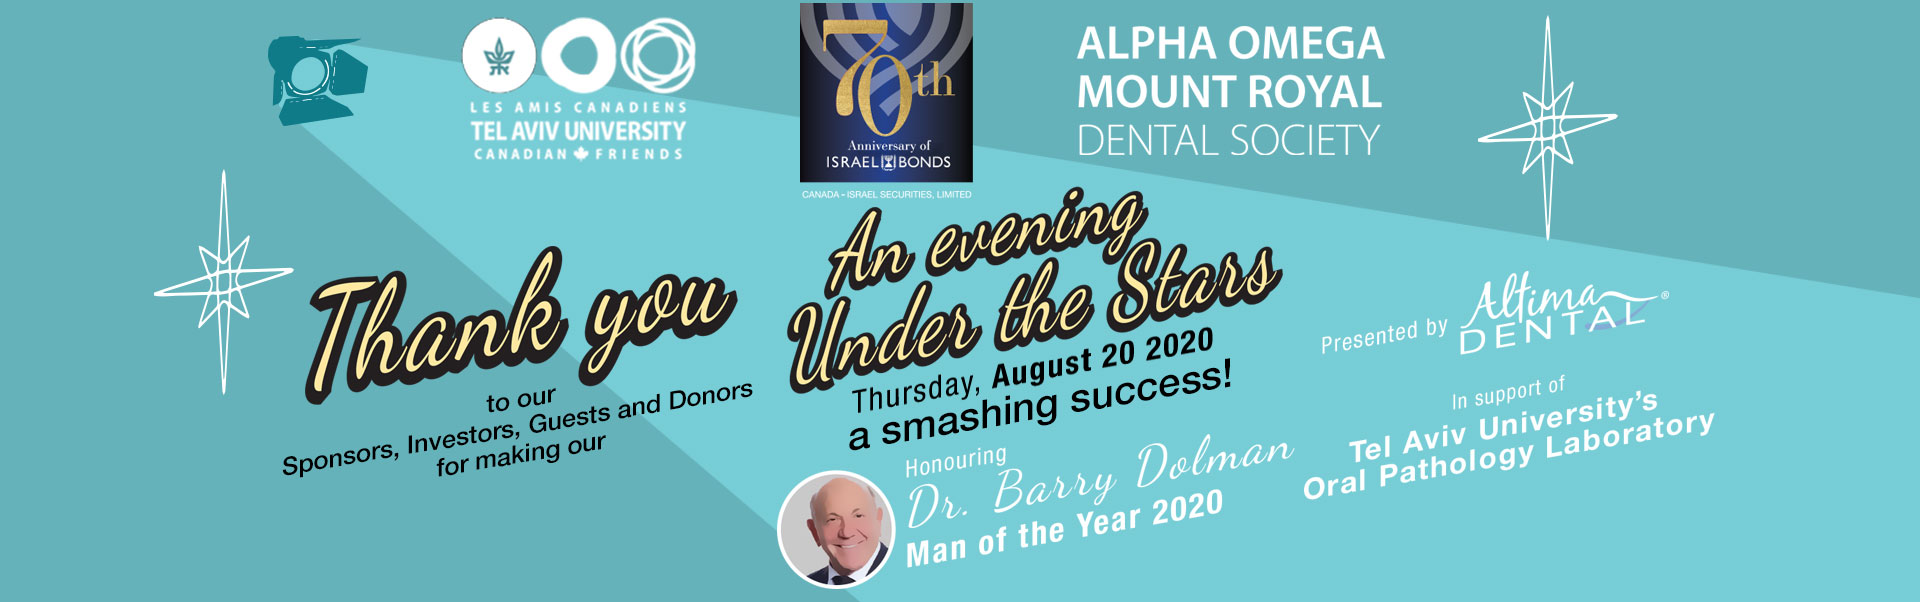 An evening Under the Stars Honouring Dr. Barry Dolman